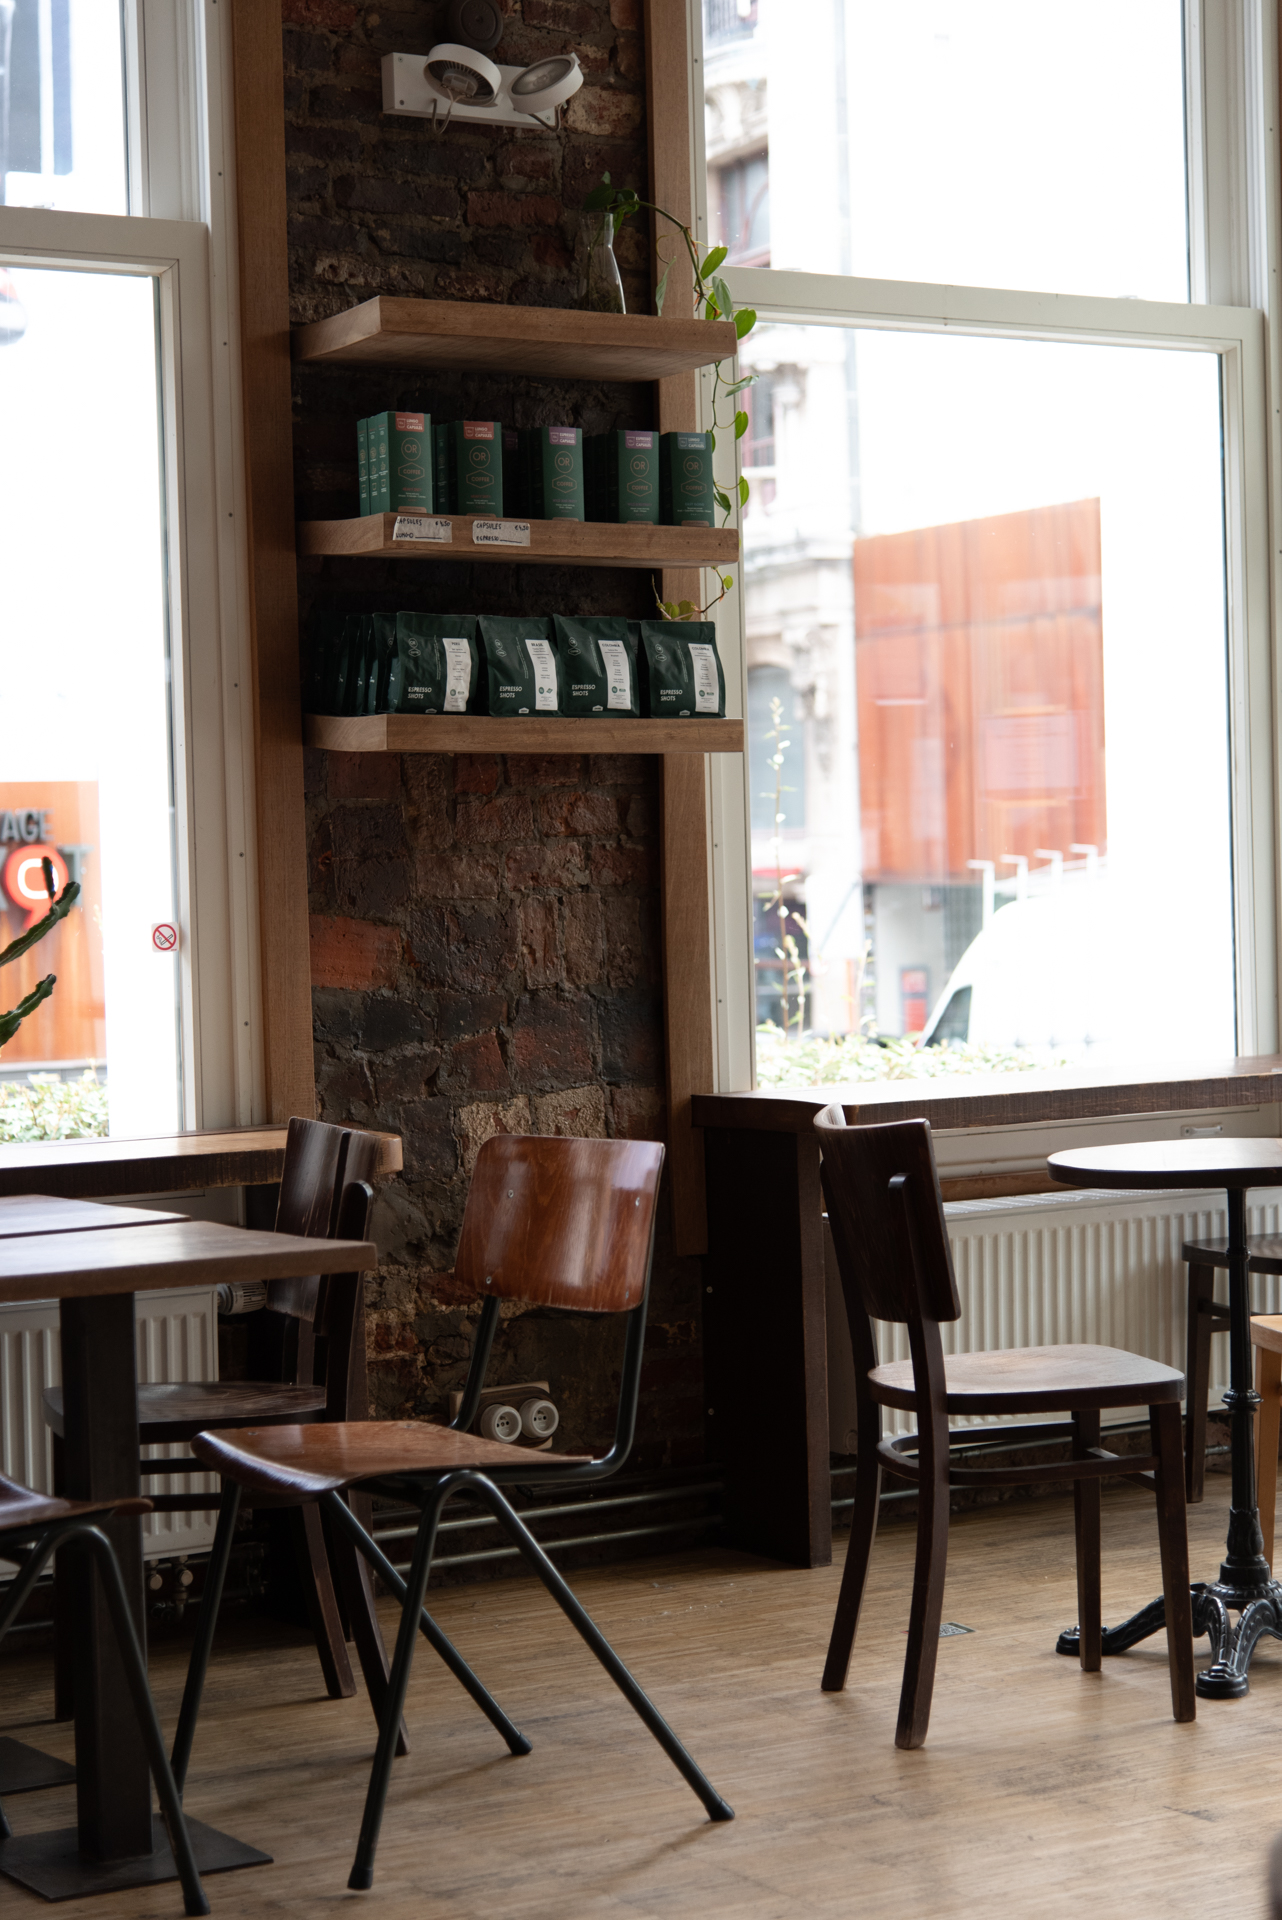 OR Coffee in Gent